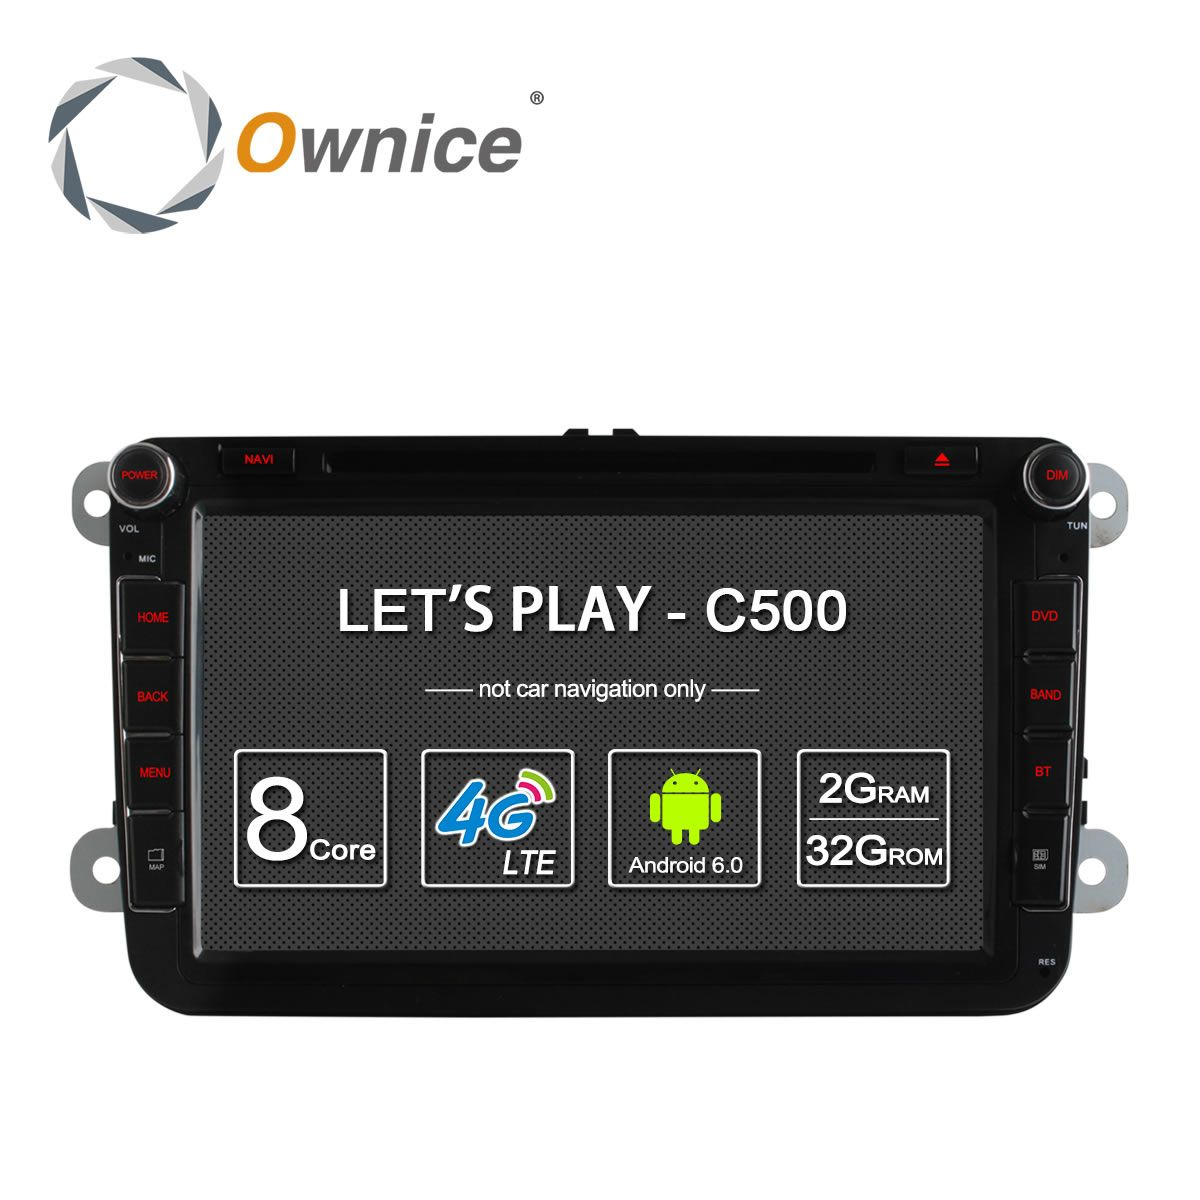 4G SIM LTE Network Ownice C500 Octa 8 Core Android 6.0 2G RAM 2 Din Car DVD GPS Navi Radio Player For VW Skoda Octavia 2